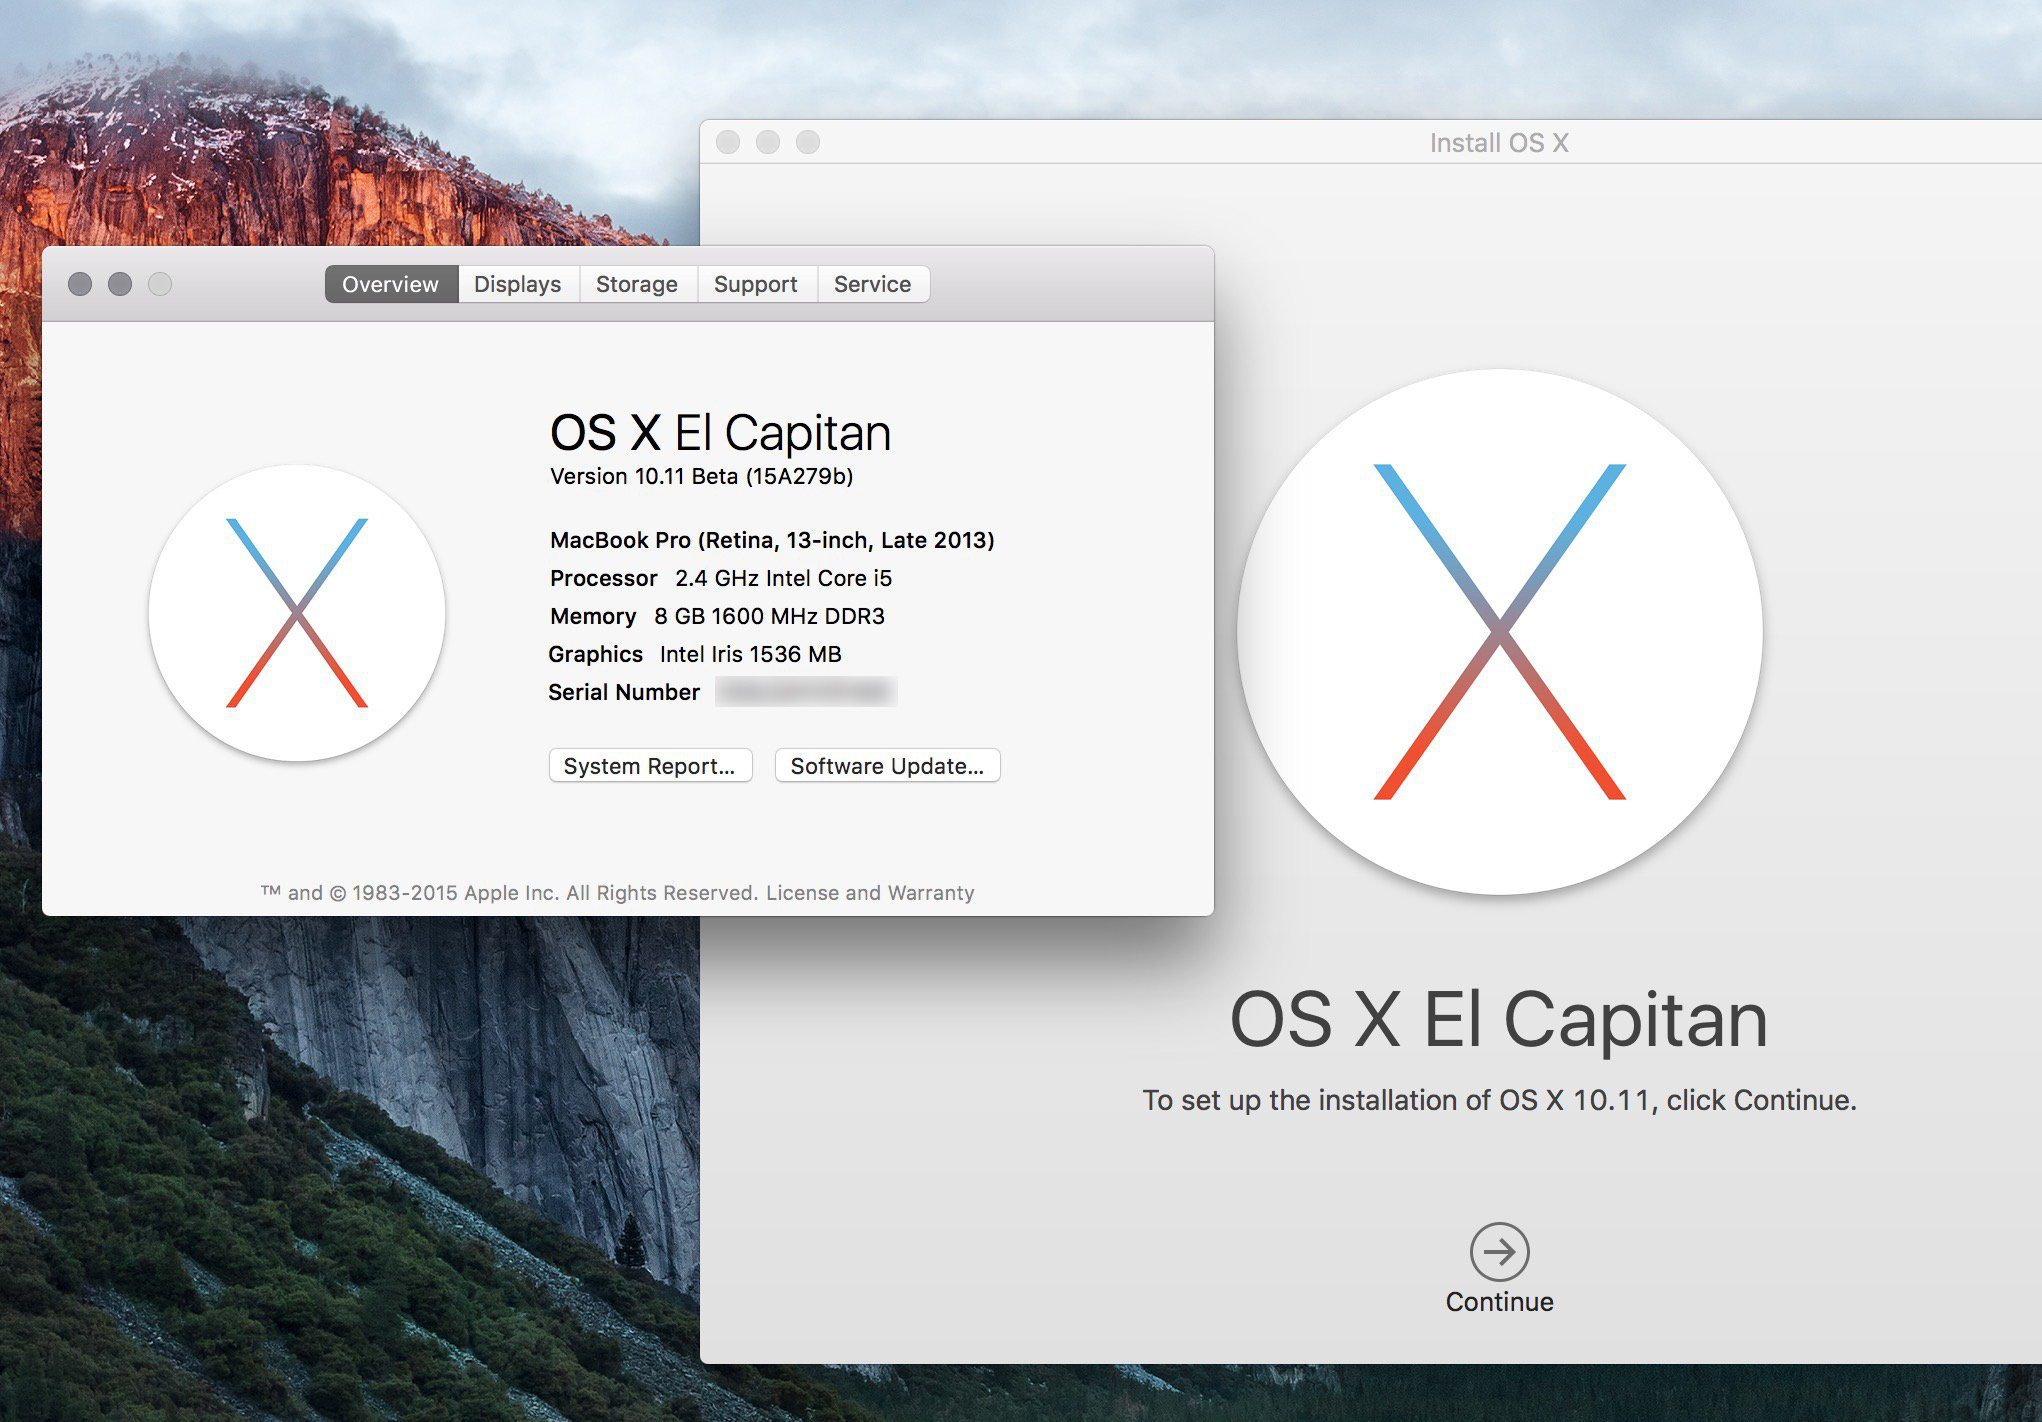 The OS X 10.11.1 release date is coming soon to fix OS X El Capitan problems including Microsoft Office.